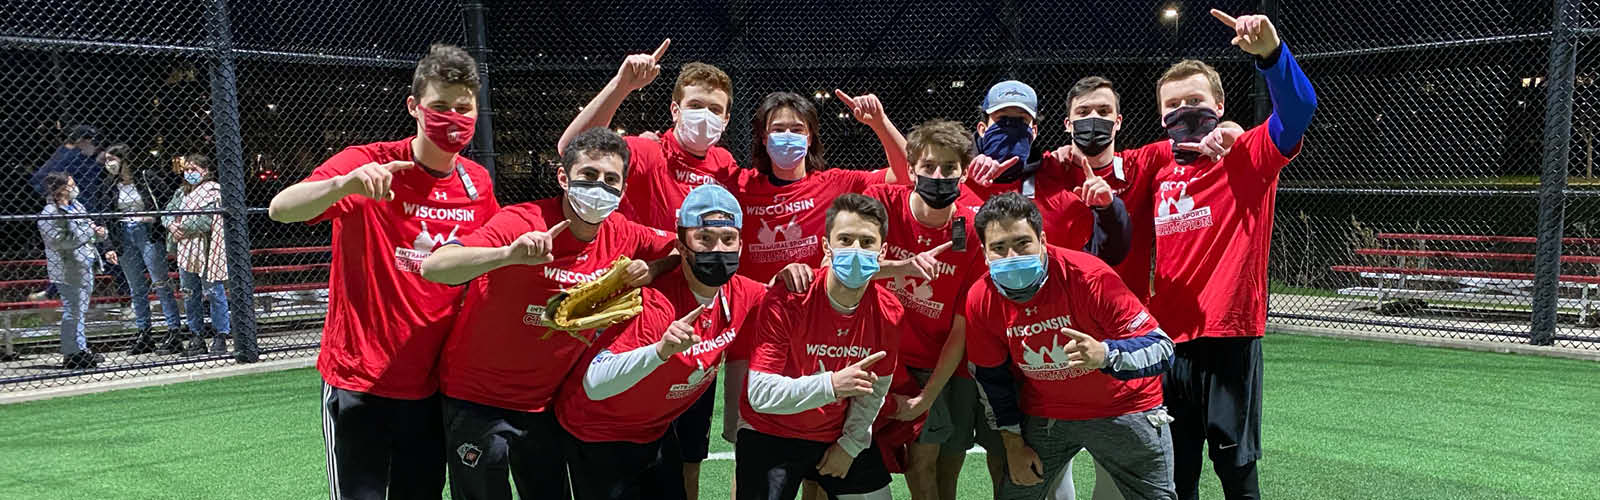 Photo of a group of students after winning a kickball game.